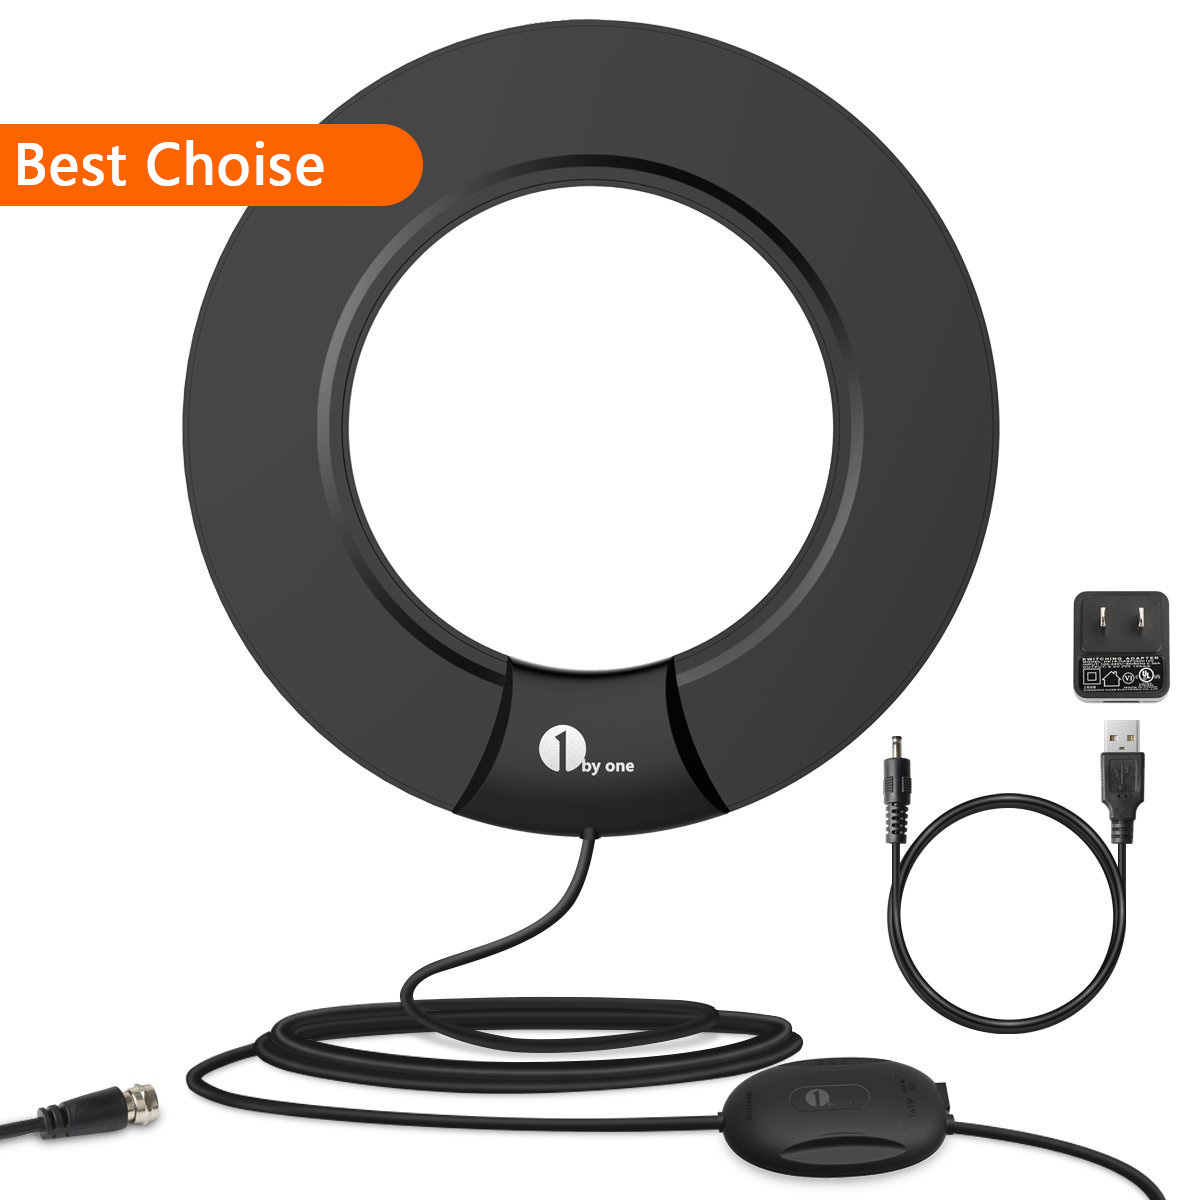 1byone TV Antenna 60 Miles with Smart Box Omni-directional and 10ft Cable and stand For High Performance - Black